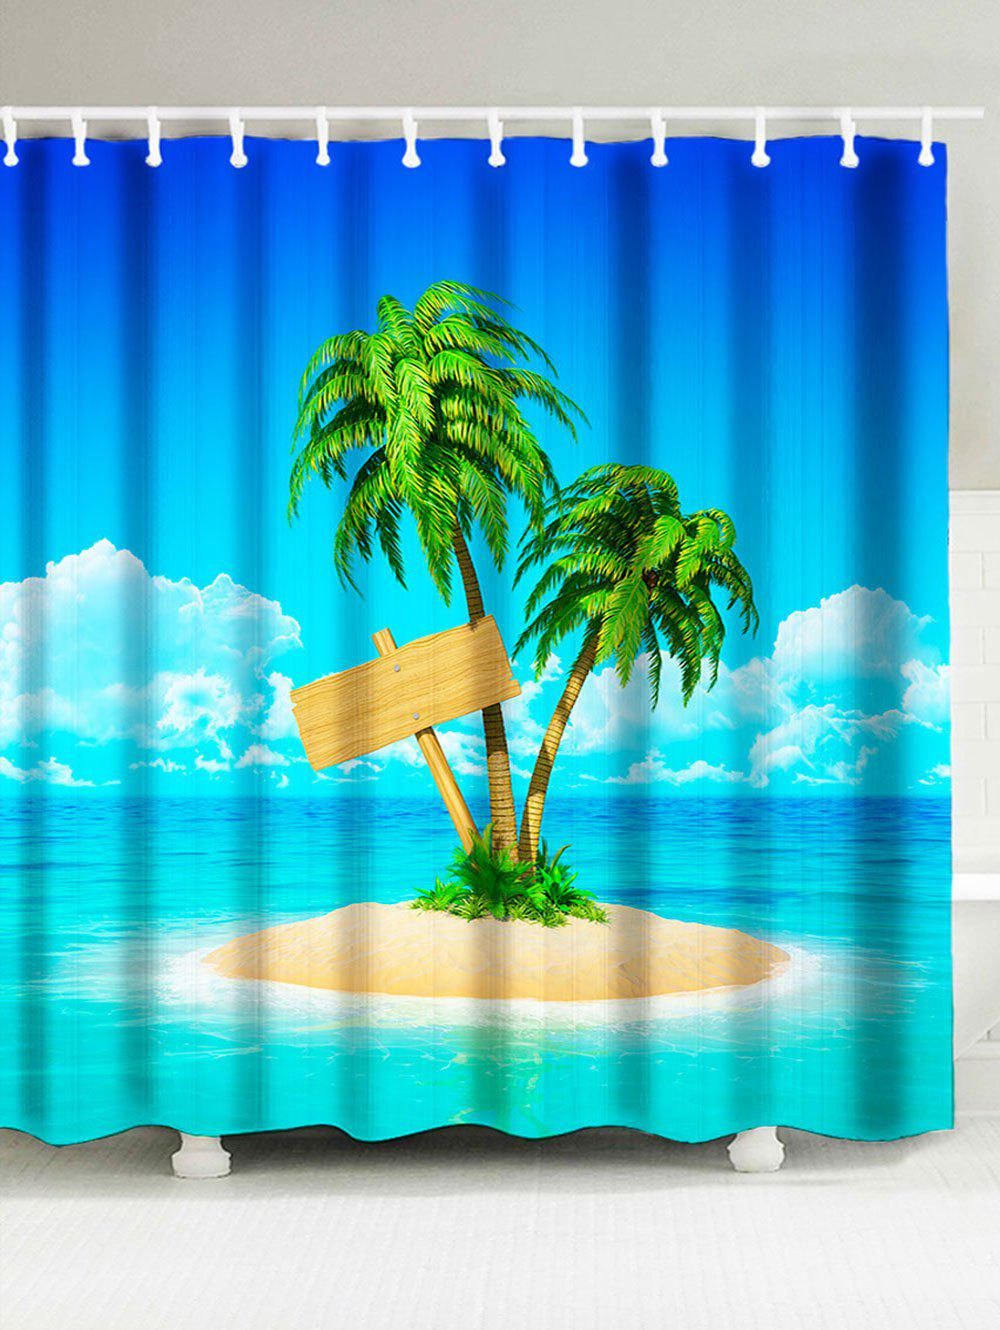 Fancy Coconut Palm On Island Beach Theme Fabric Shower Curtain